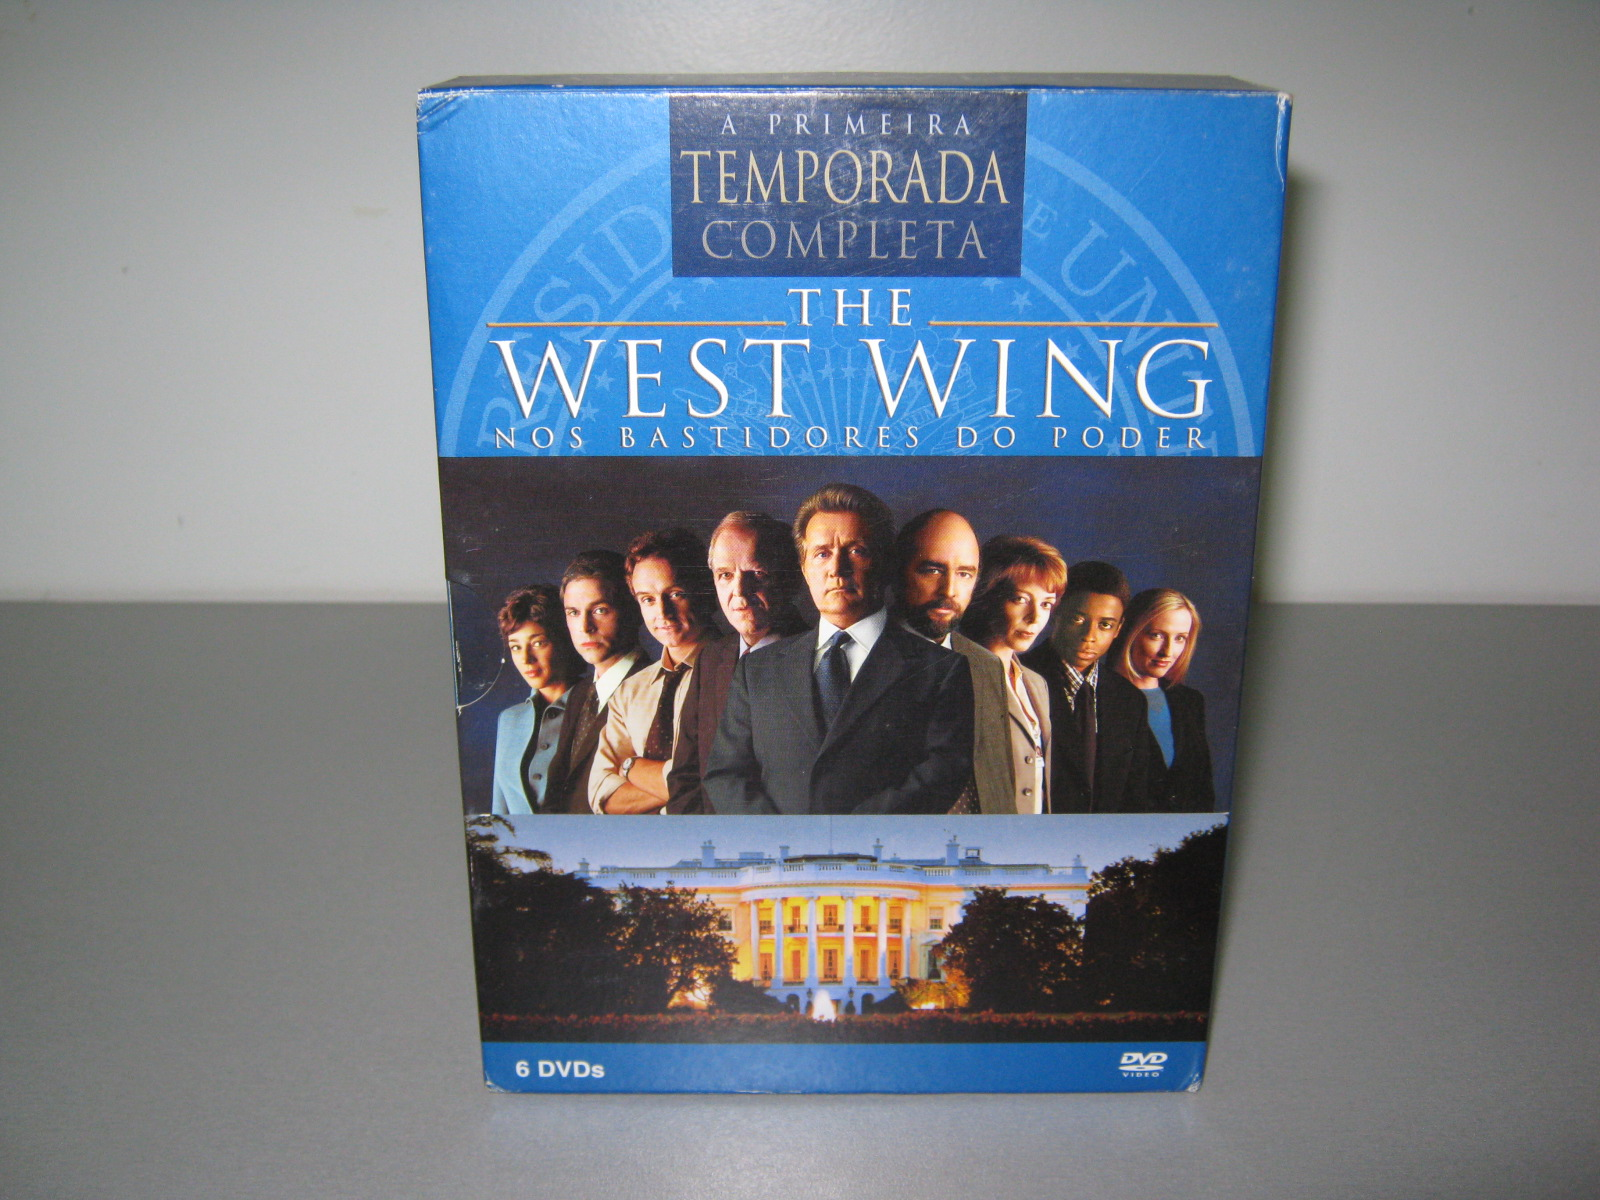 rafael f 39 s dvd bd collection west wing the a primeira temporada completa. Black Bedroom Furniture Sets. Home Design Ideas